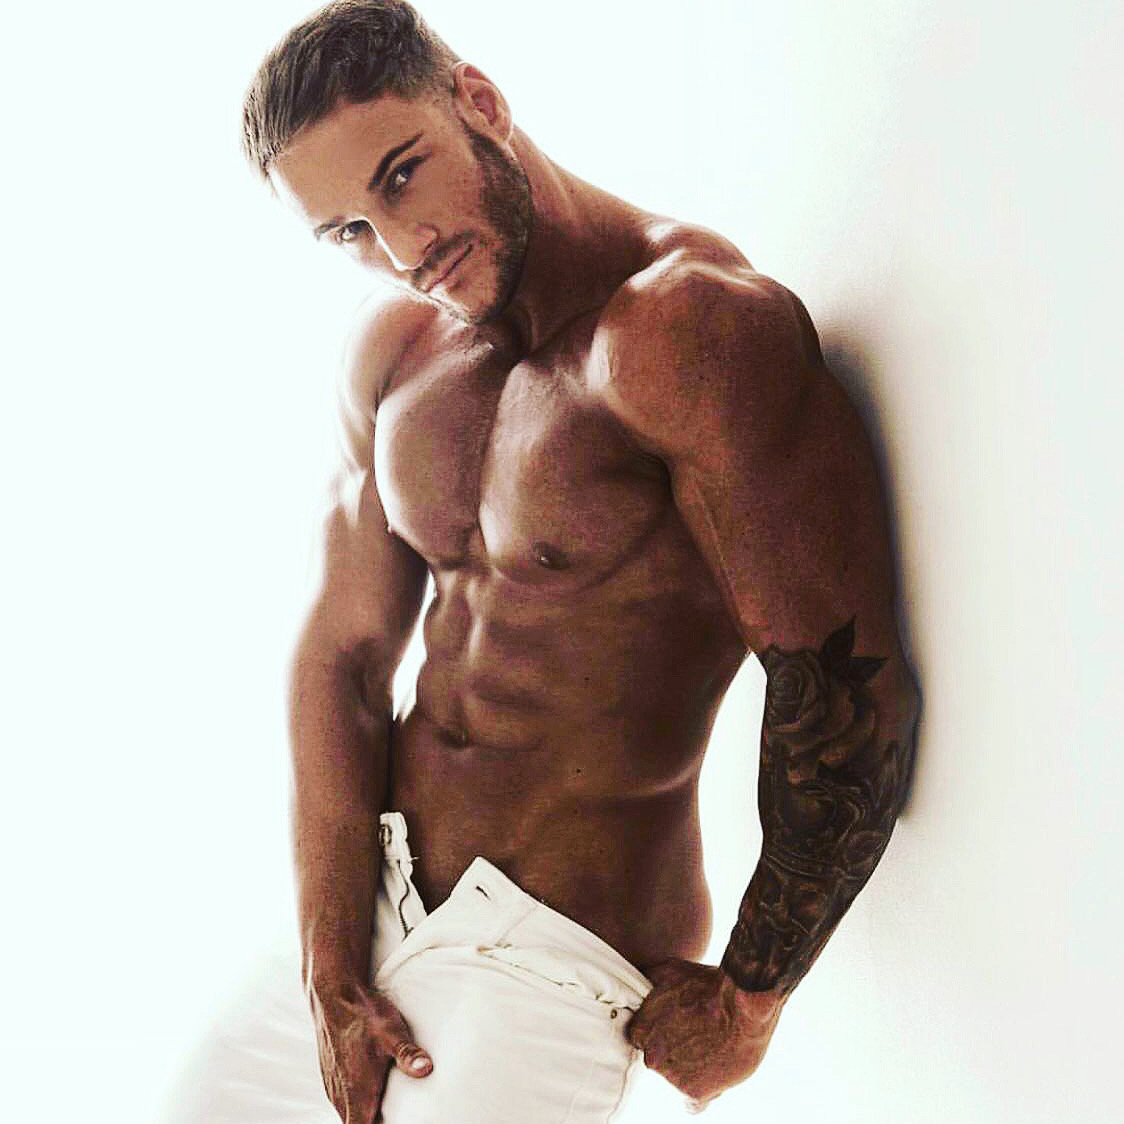 male strippers from the Dreamboys male strip club | Glen Wastson